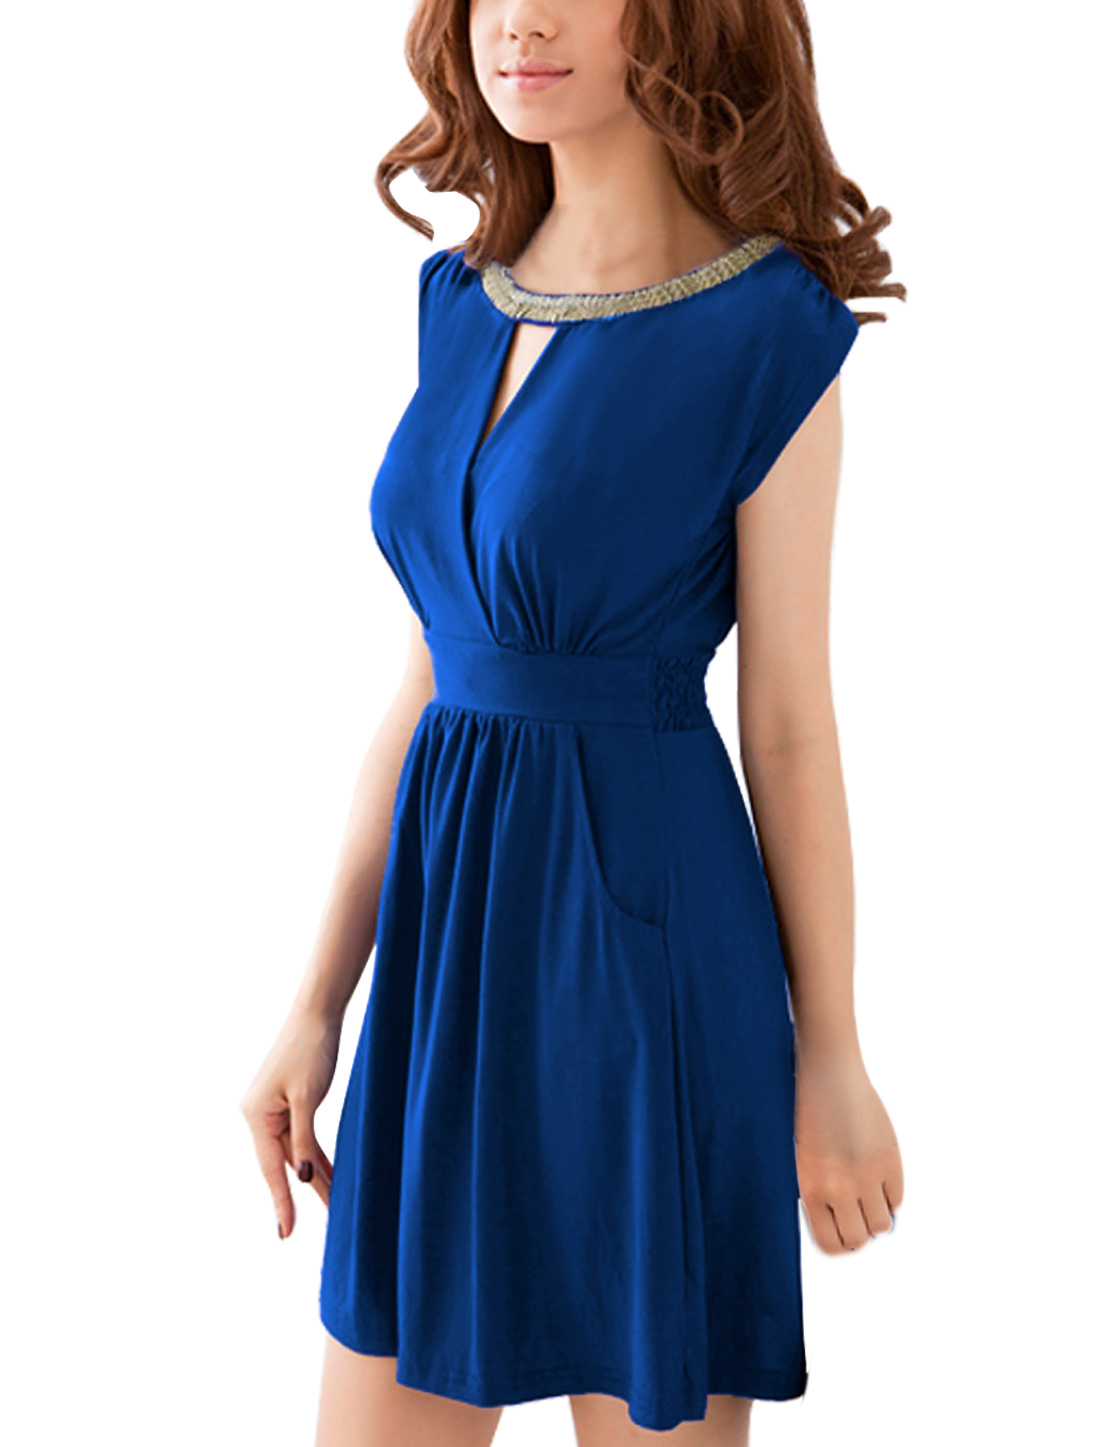 Woman Studs Decor Neck Crossover Front Blue Dress S